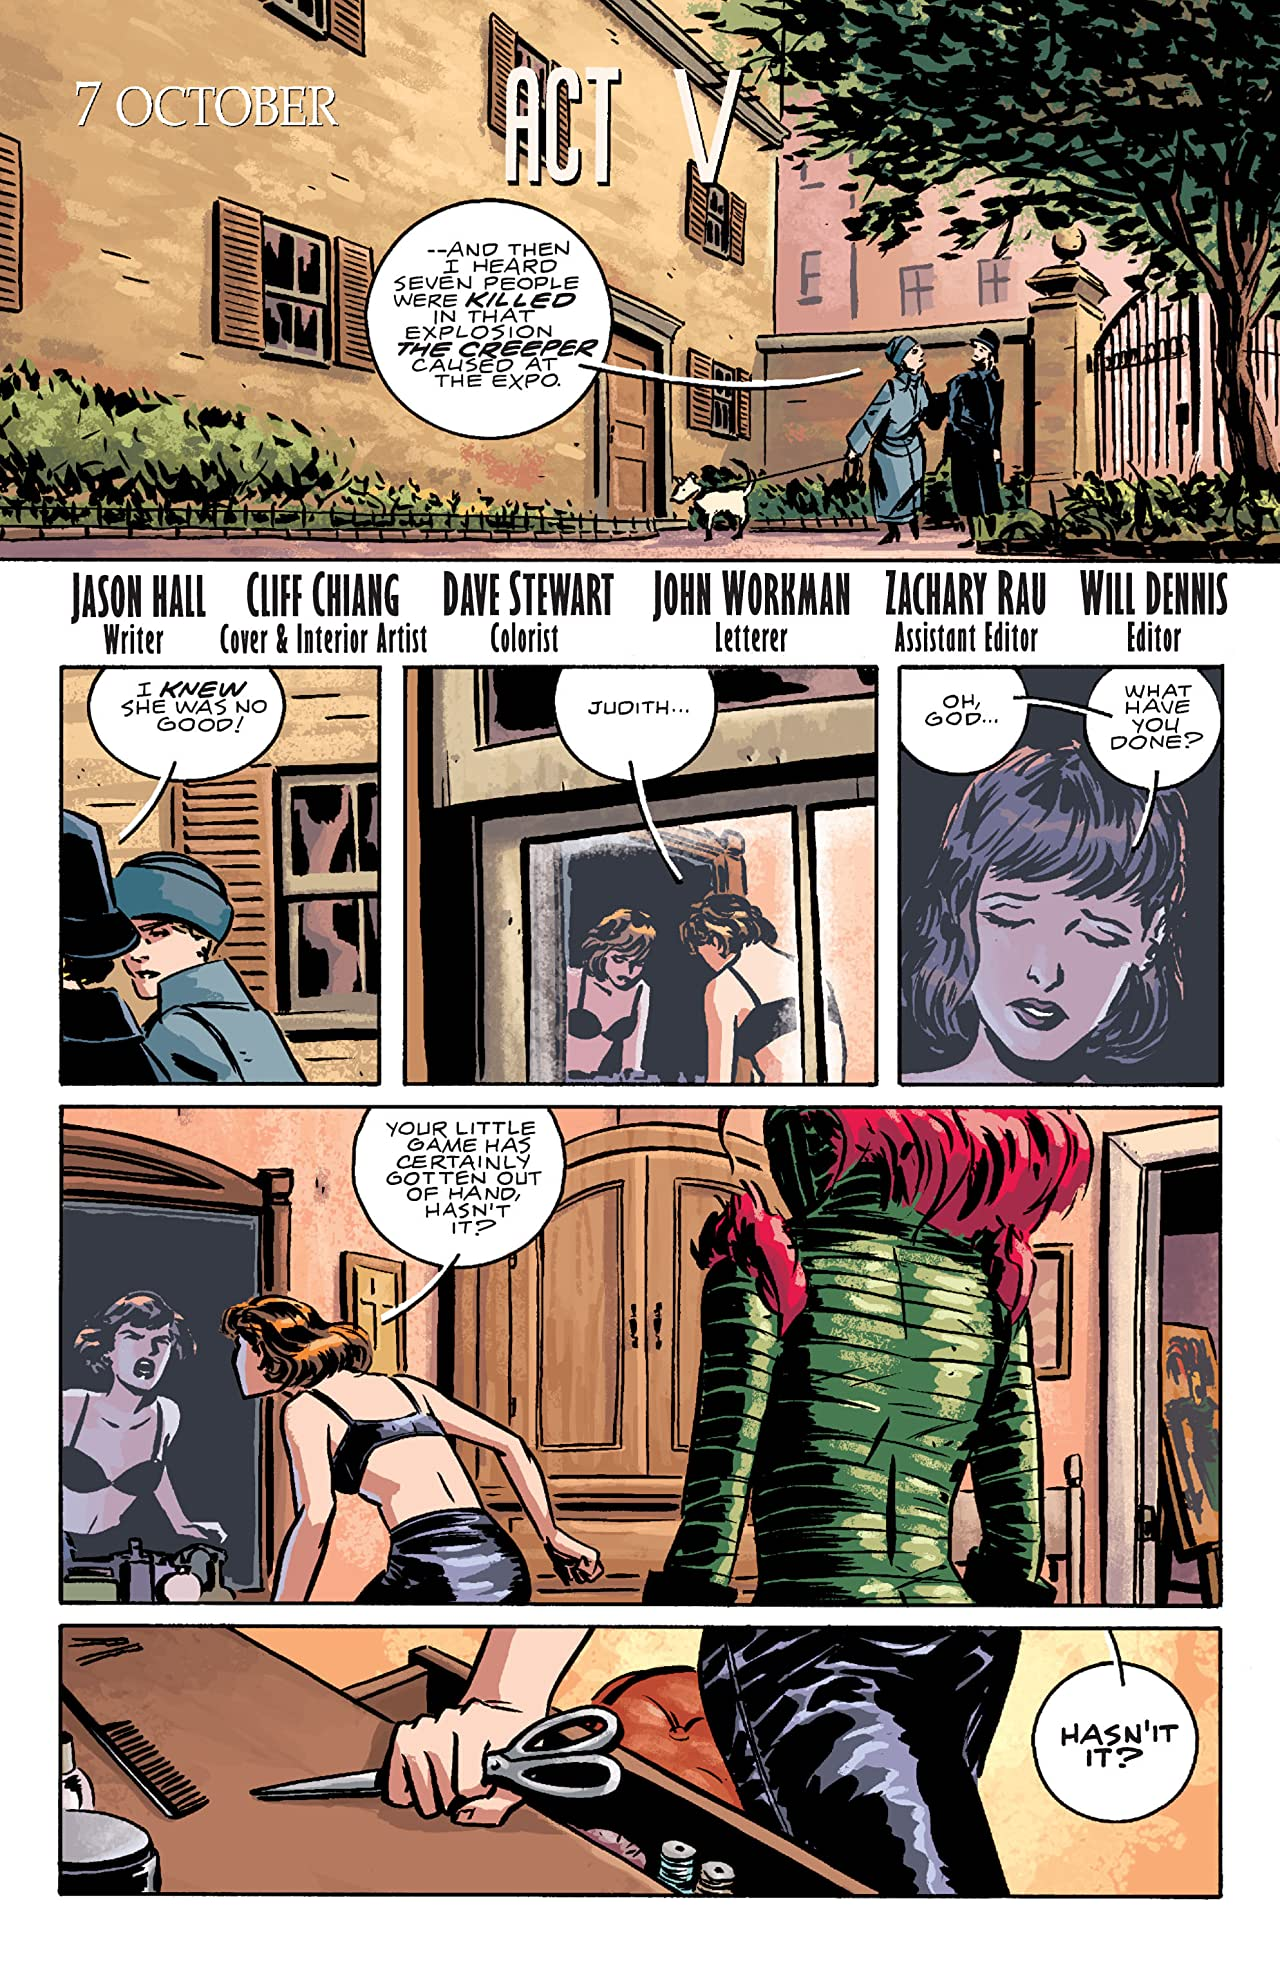 Beware The Creeper (2003) #5 (of 5)